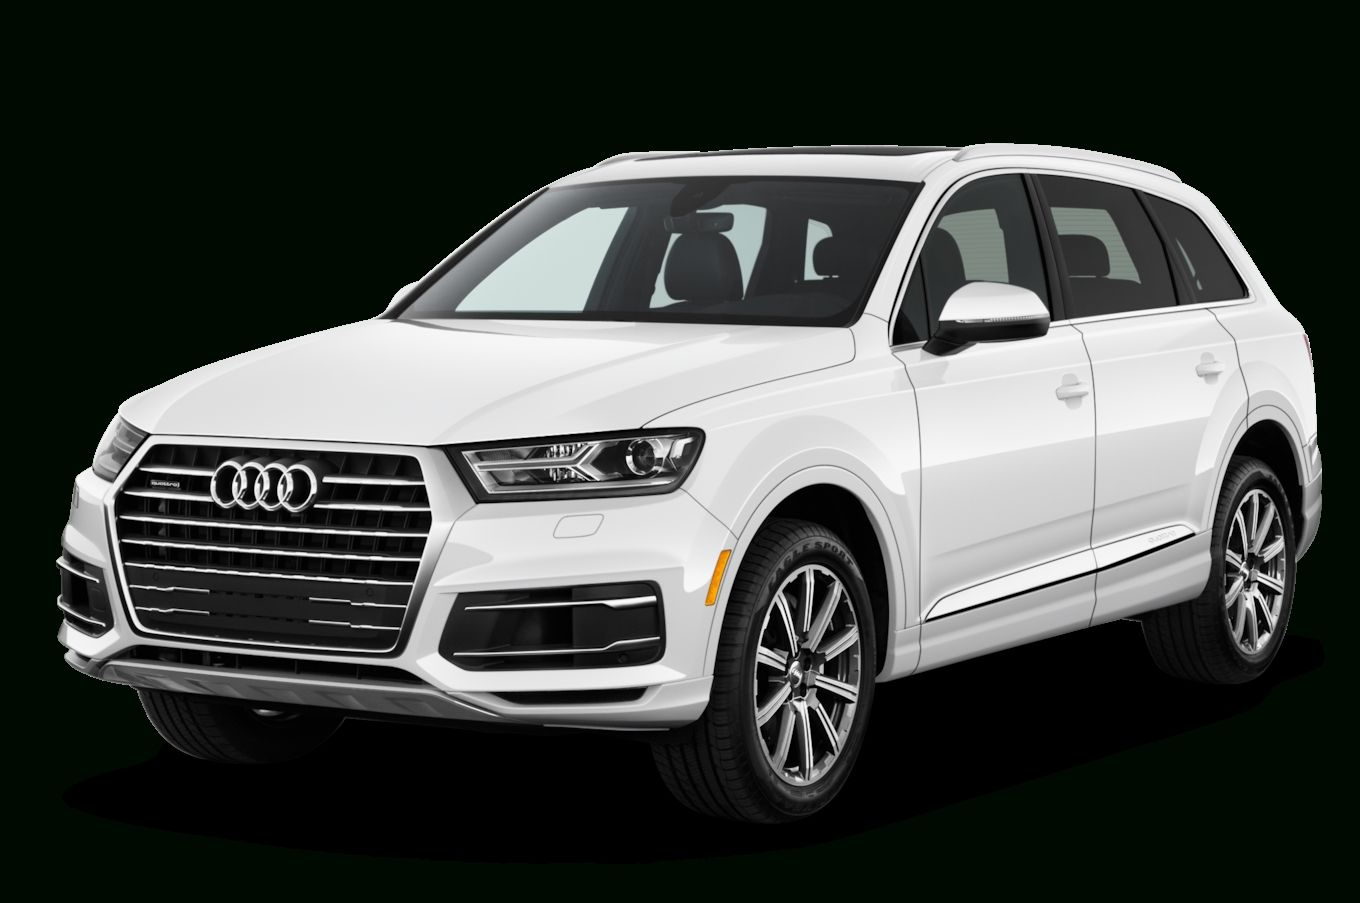 2019 Audi Q7 Usa Price And Release Date